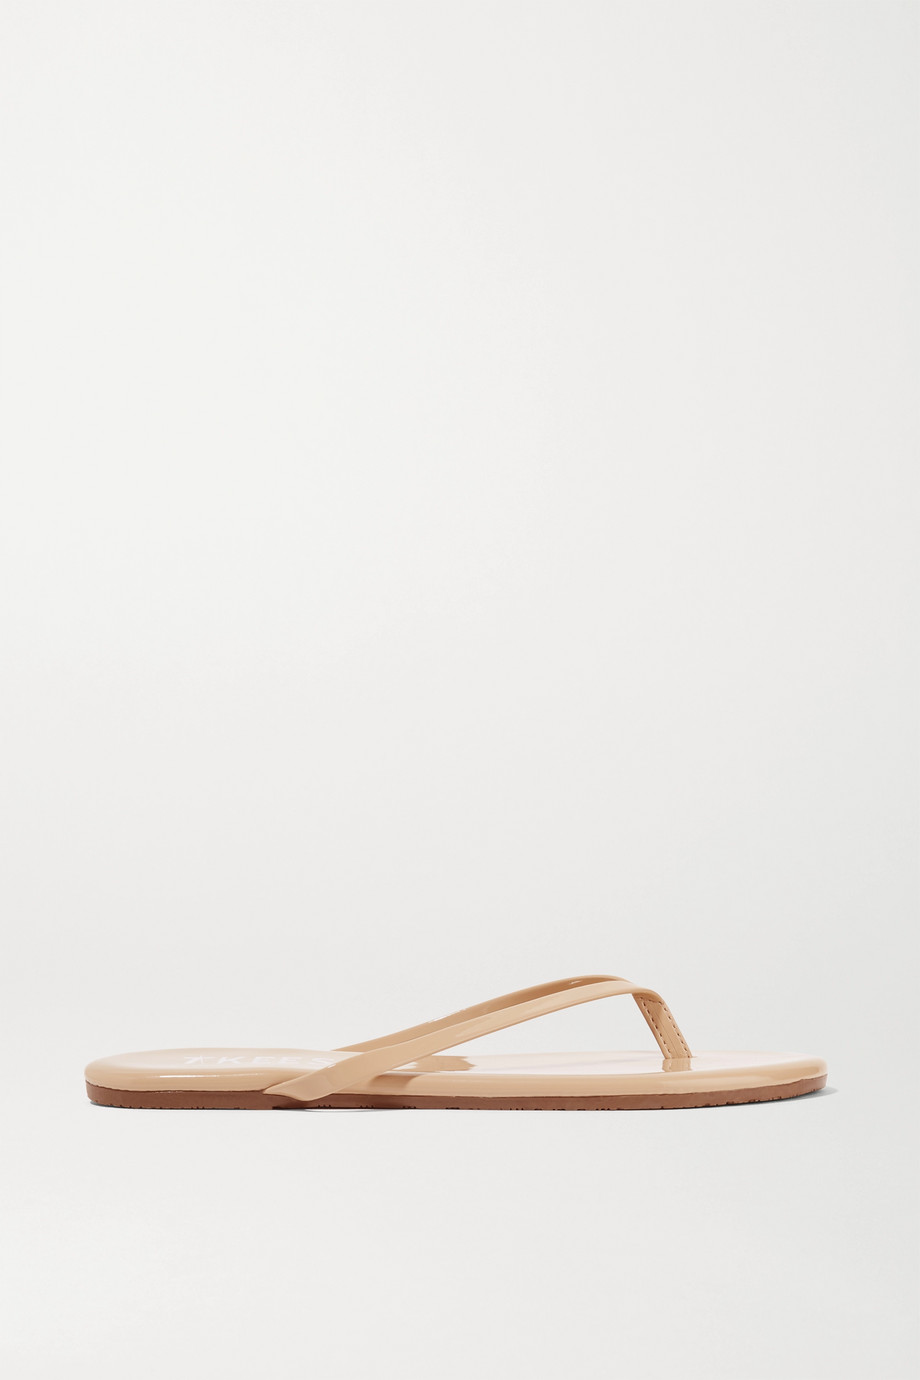 Tkees Lily Patent-Leather Flip Flops, Beige, Women's, Size: 6